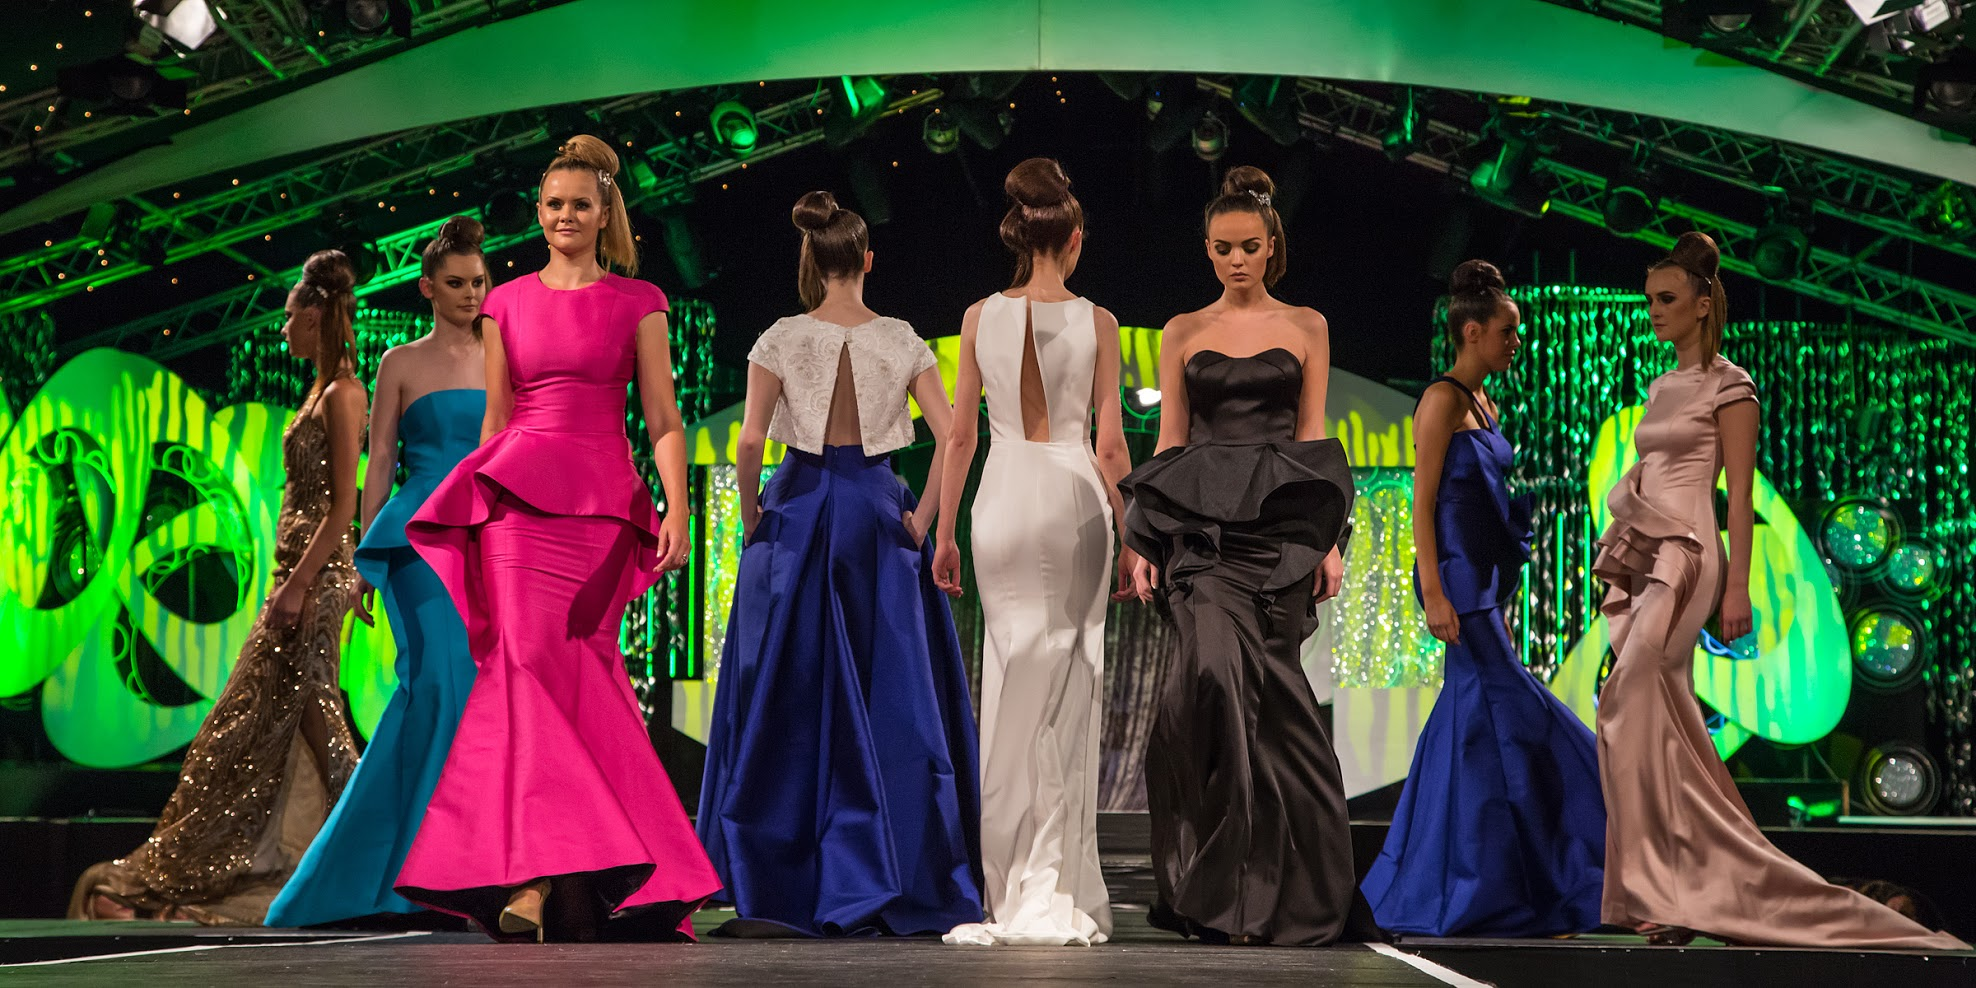 dolf_patijn_rose_of_tralee_fashion_16082015_0476